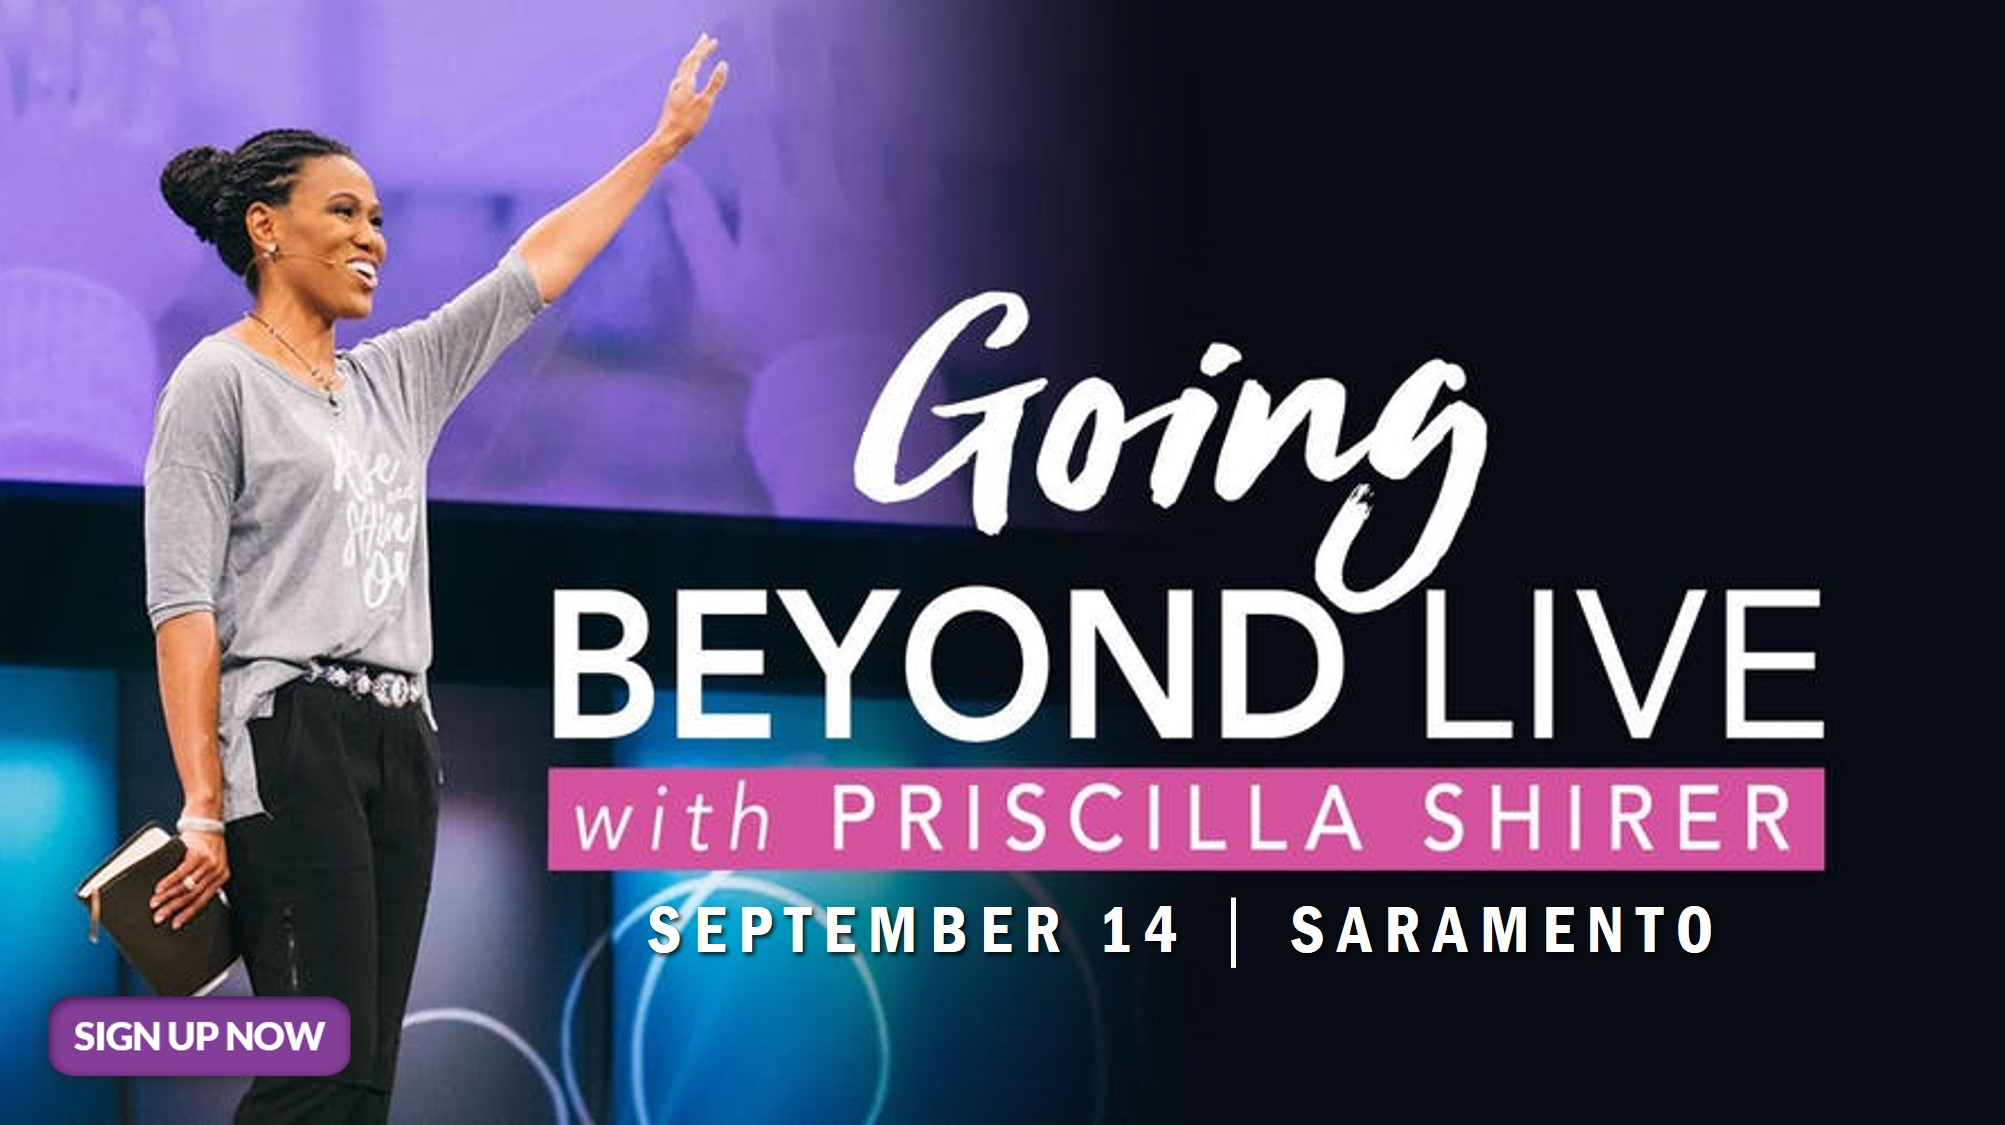 Going Beyond Live Conference.jpg